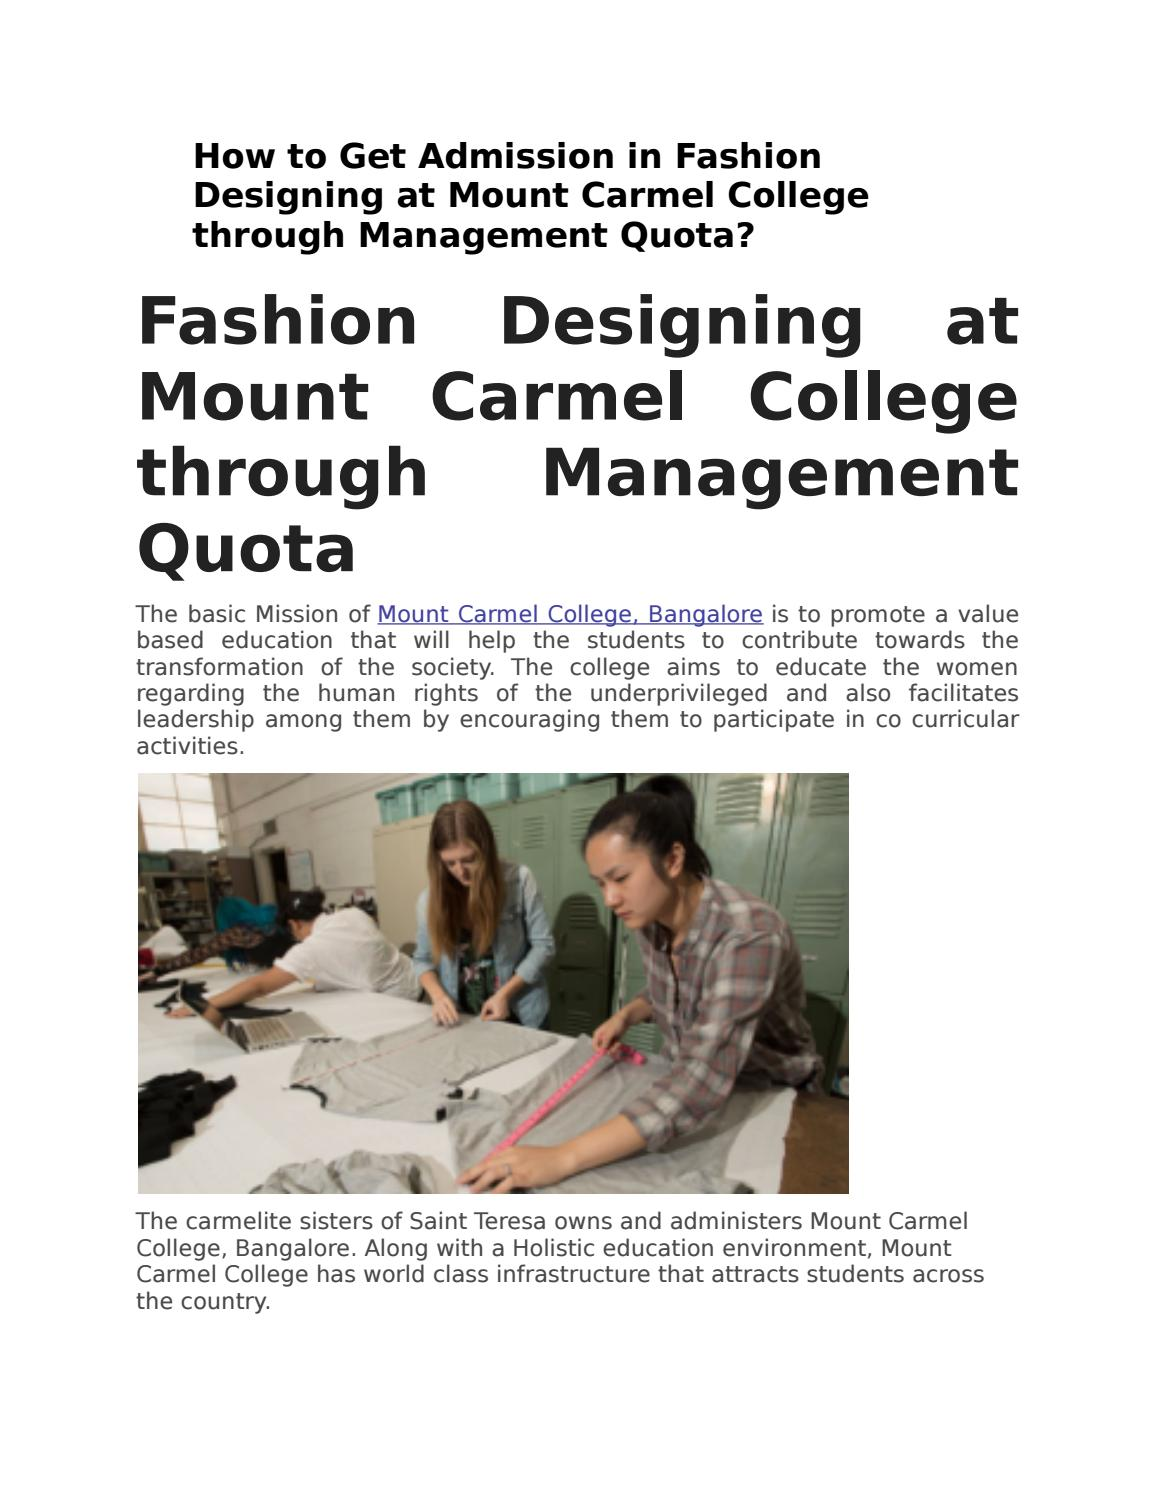 Fashion Designing At Mount Carmel College Through Management Quota By Gcs Online Issuu